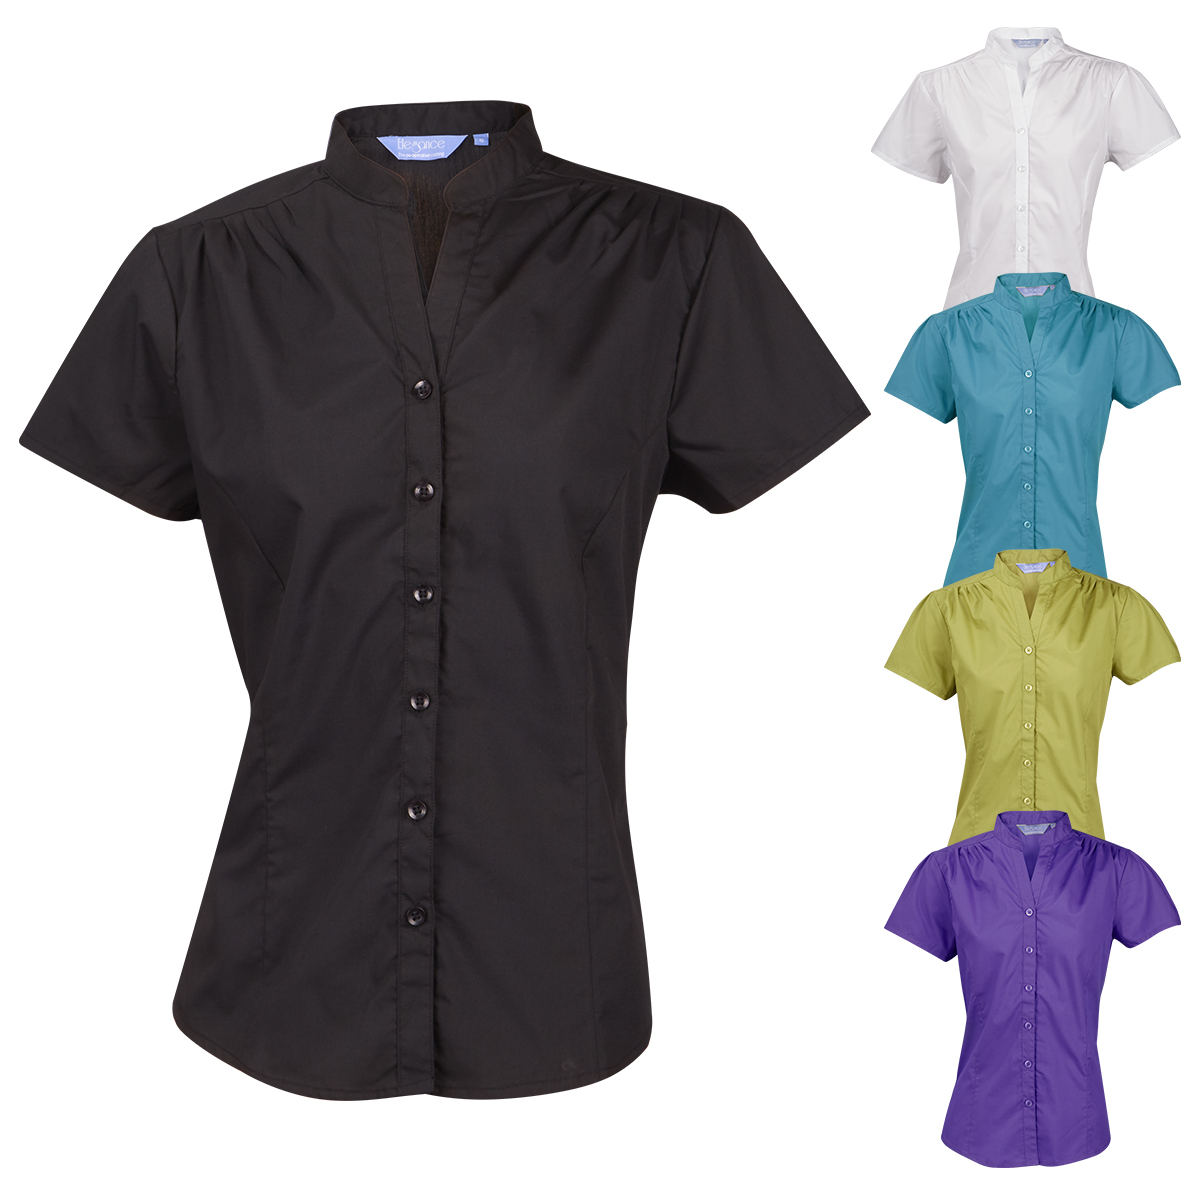 Ladies Womens Blouse Shirt Top Short Sleeve Work Office